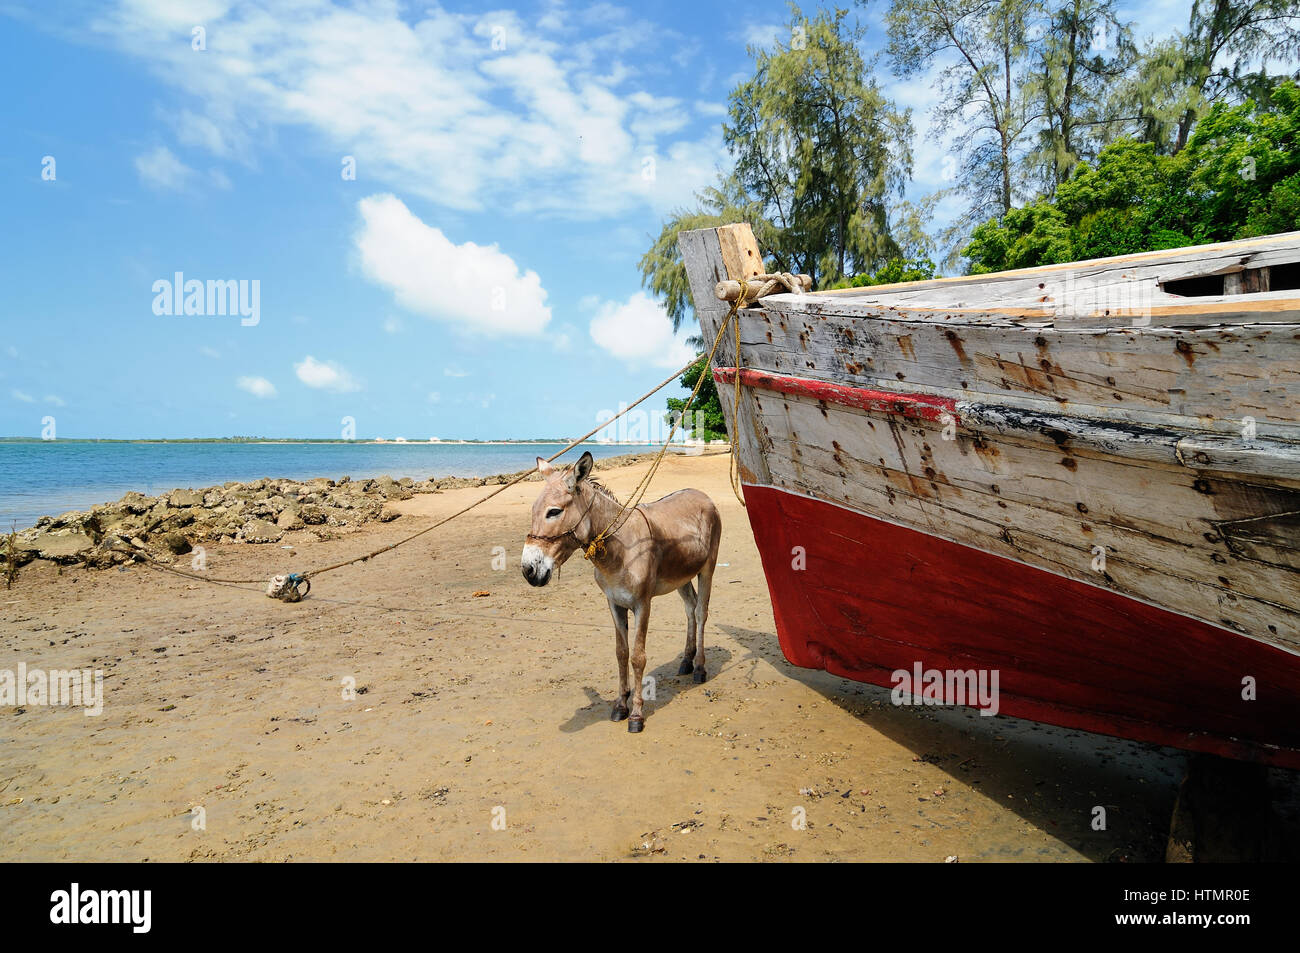 Donkey being used for a transportation of sand on the Lamu archipelago standing on the beach, Kenya Stock Photo